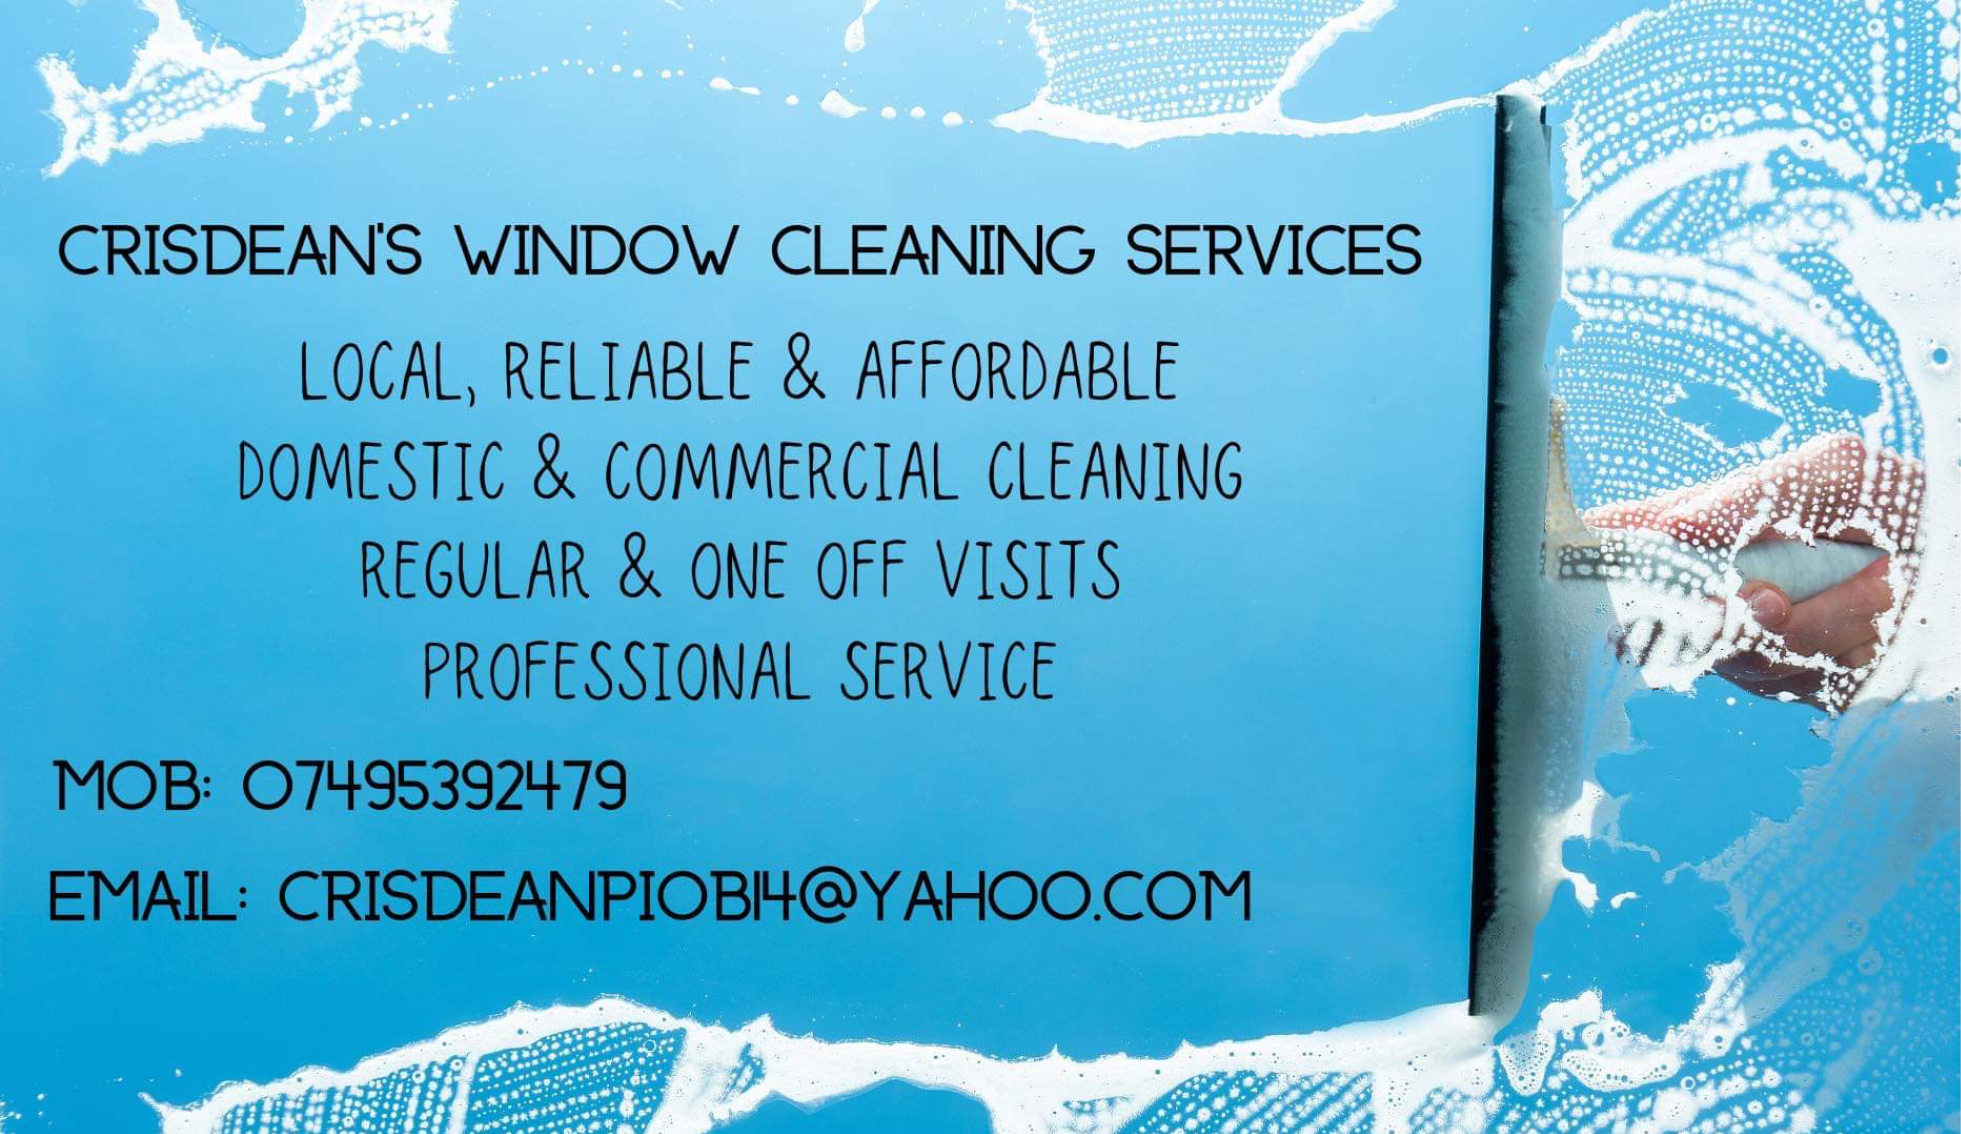 Crisdeans window cleaning services